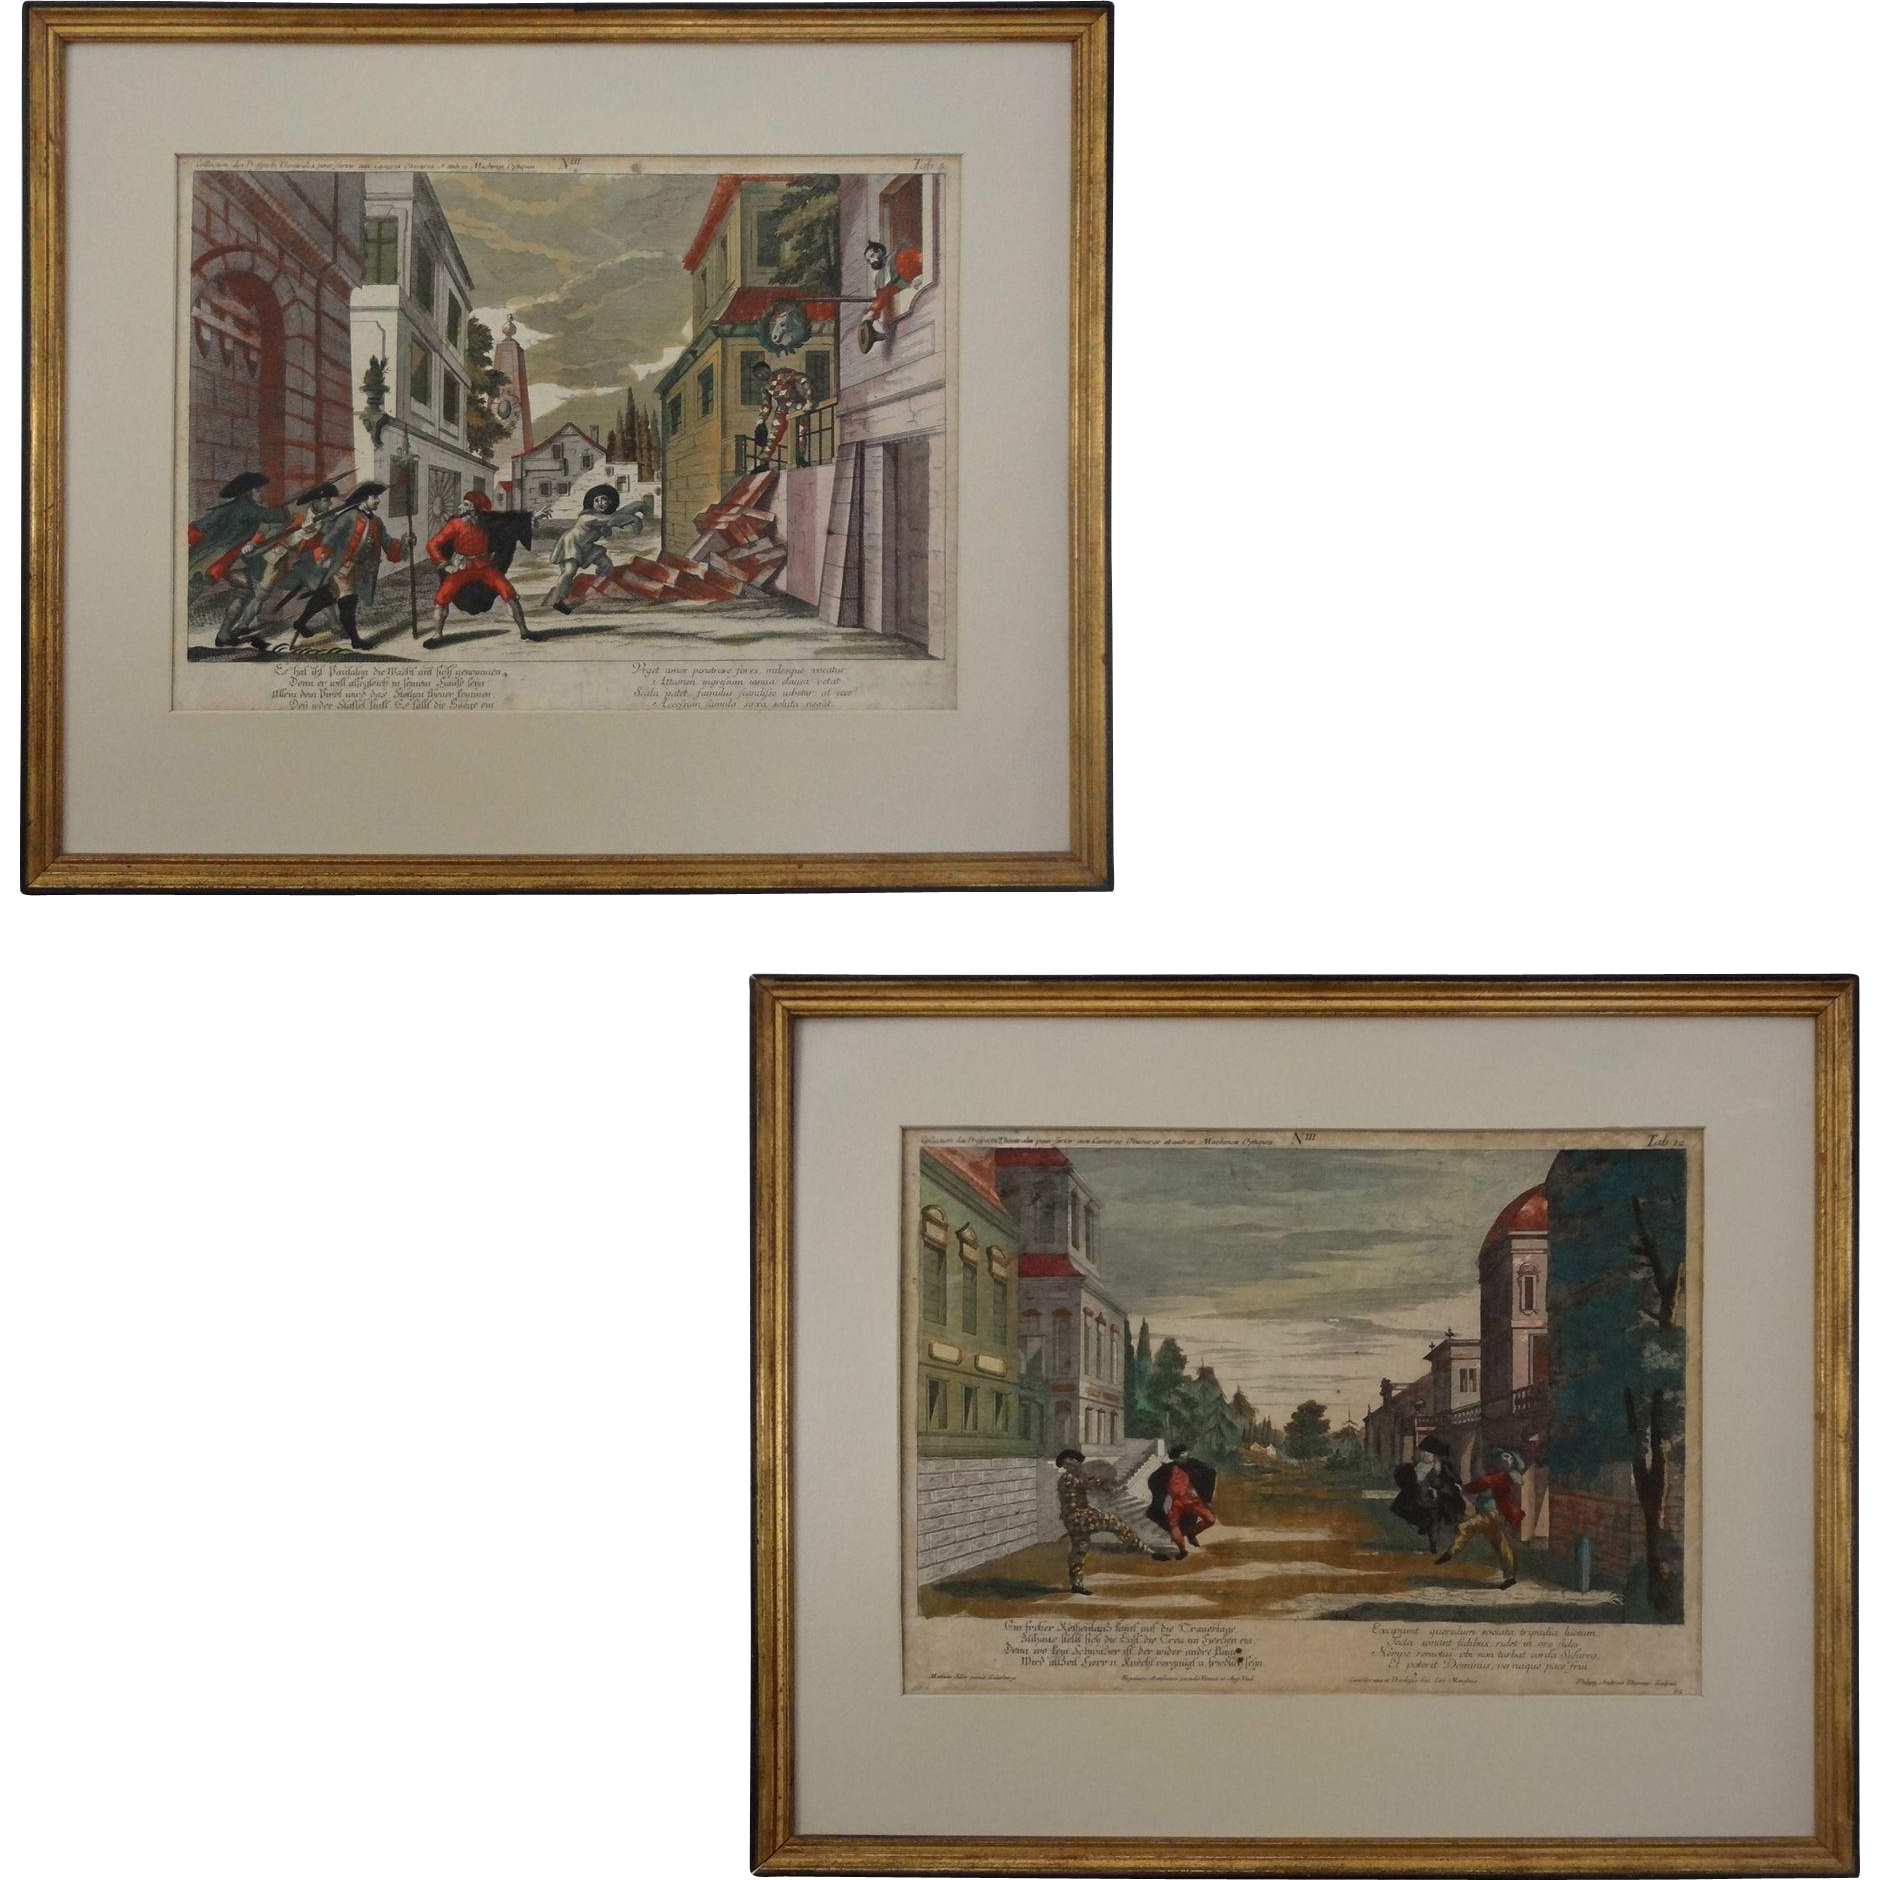 Pair 18th Century Engravings Hand-Colored Philip Andreas Degmair after Matthias Siller Tab. 5 & 12 - Vienna, 1764